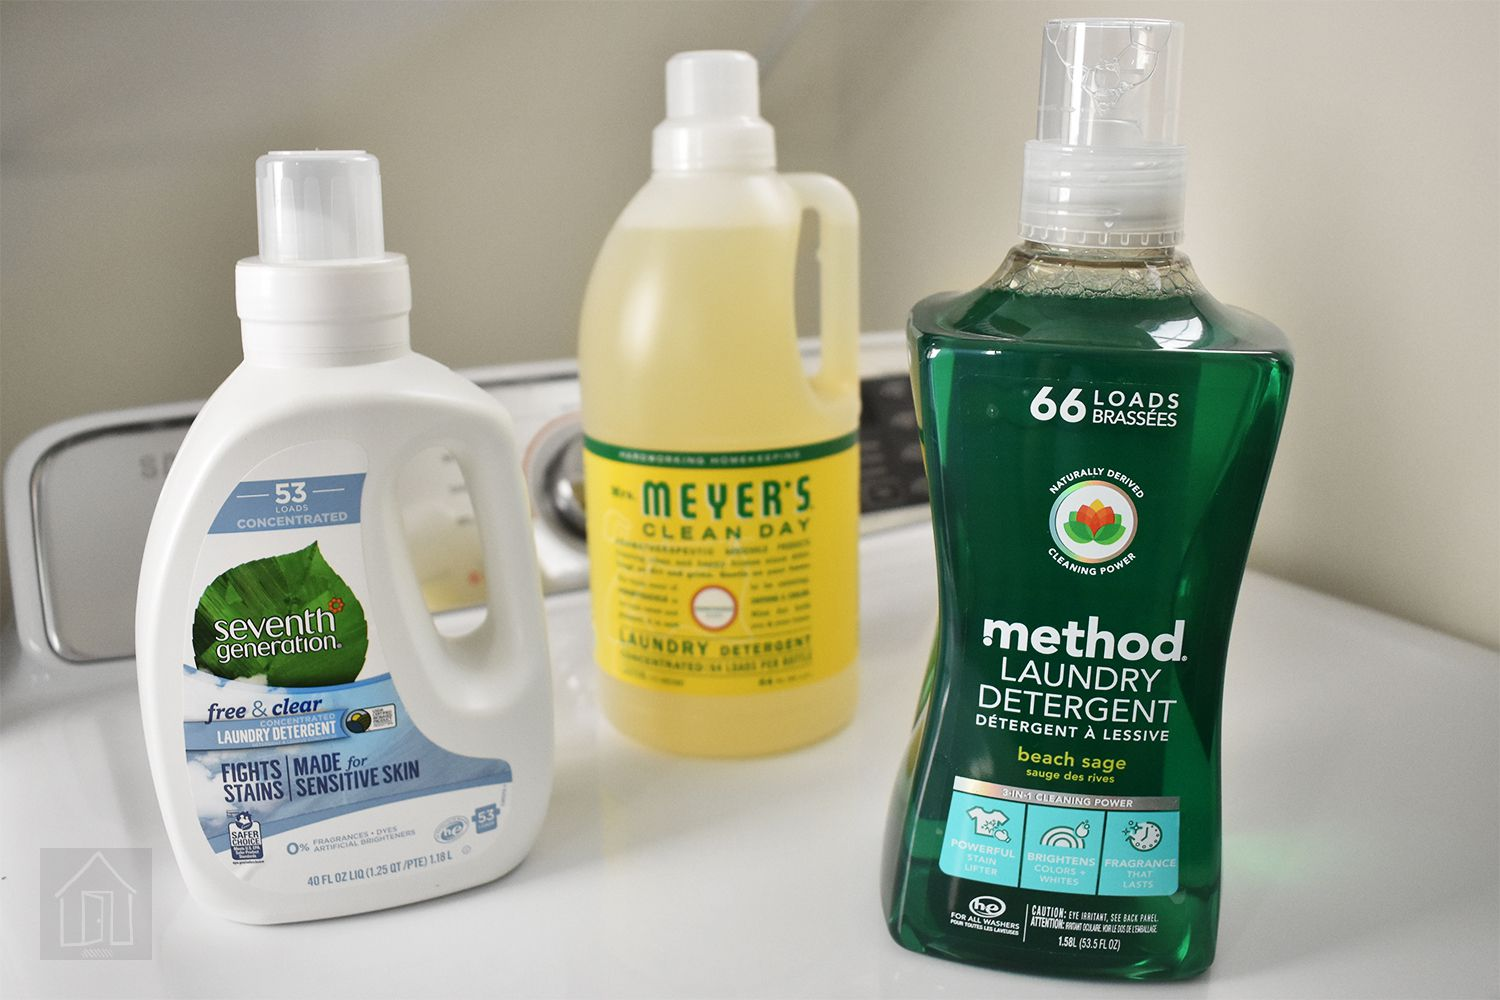 Seventh Generation Free & Clear Concentrated Laundry Detergent